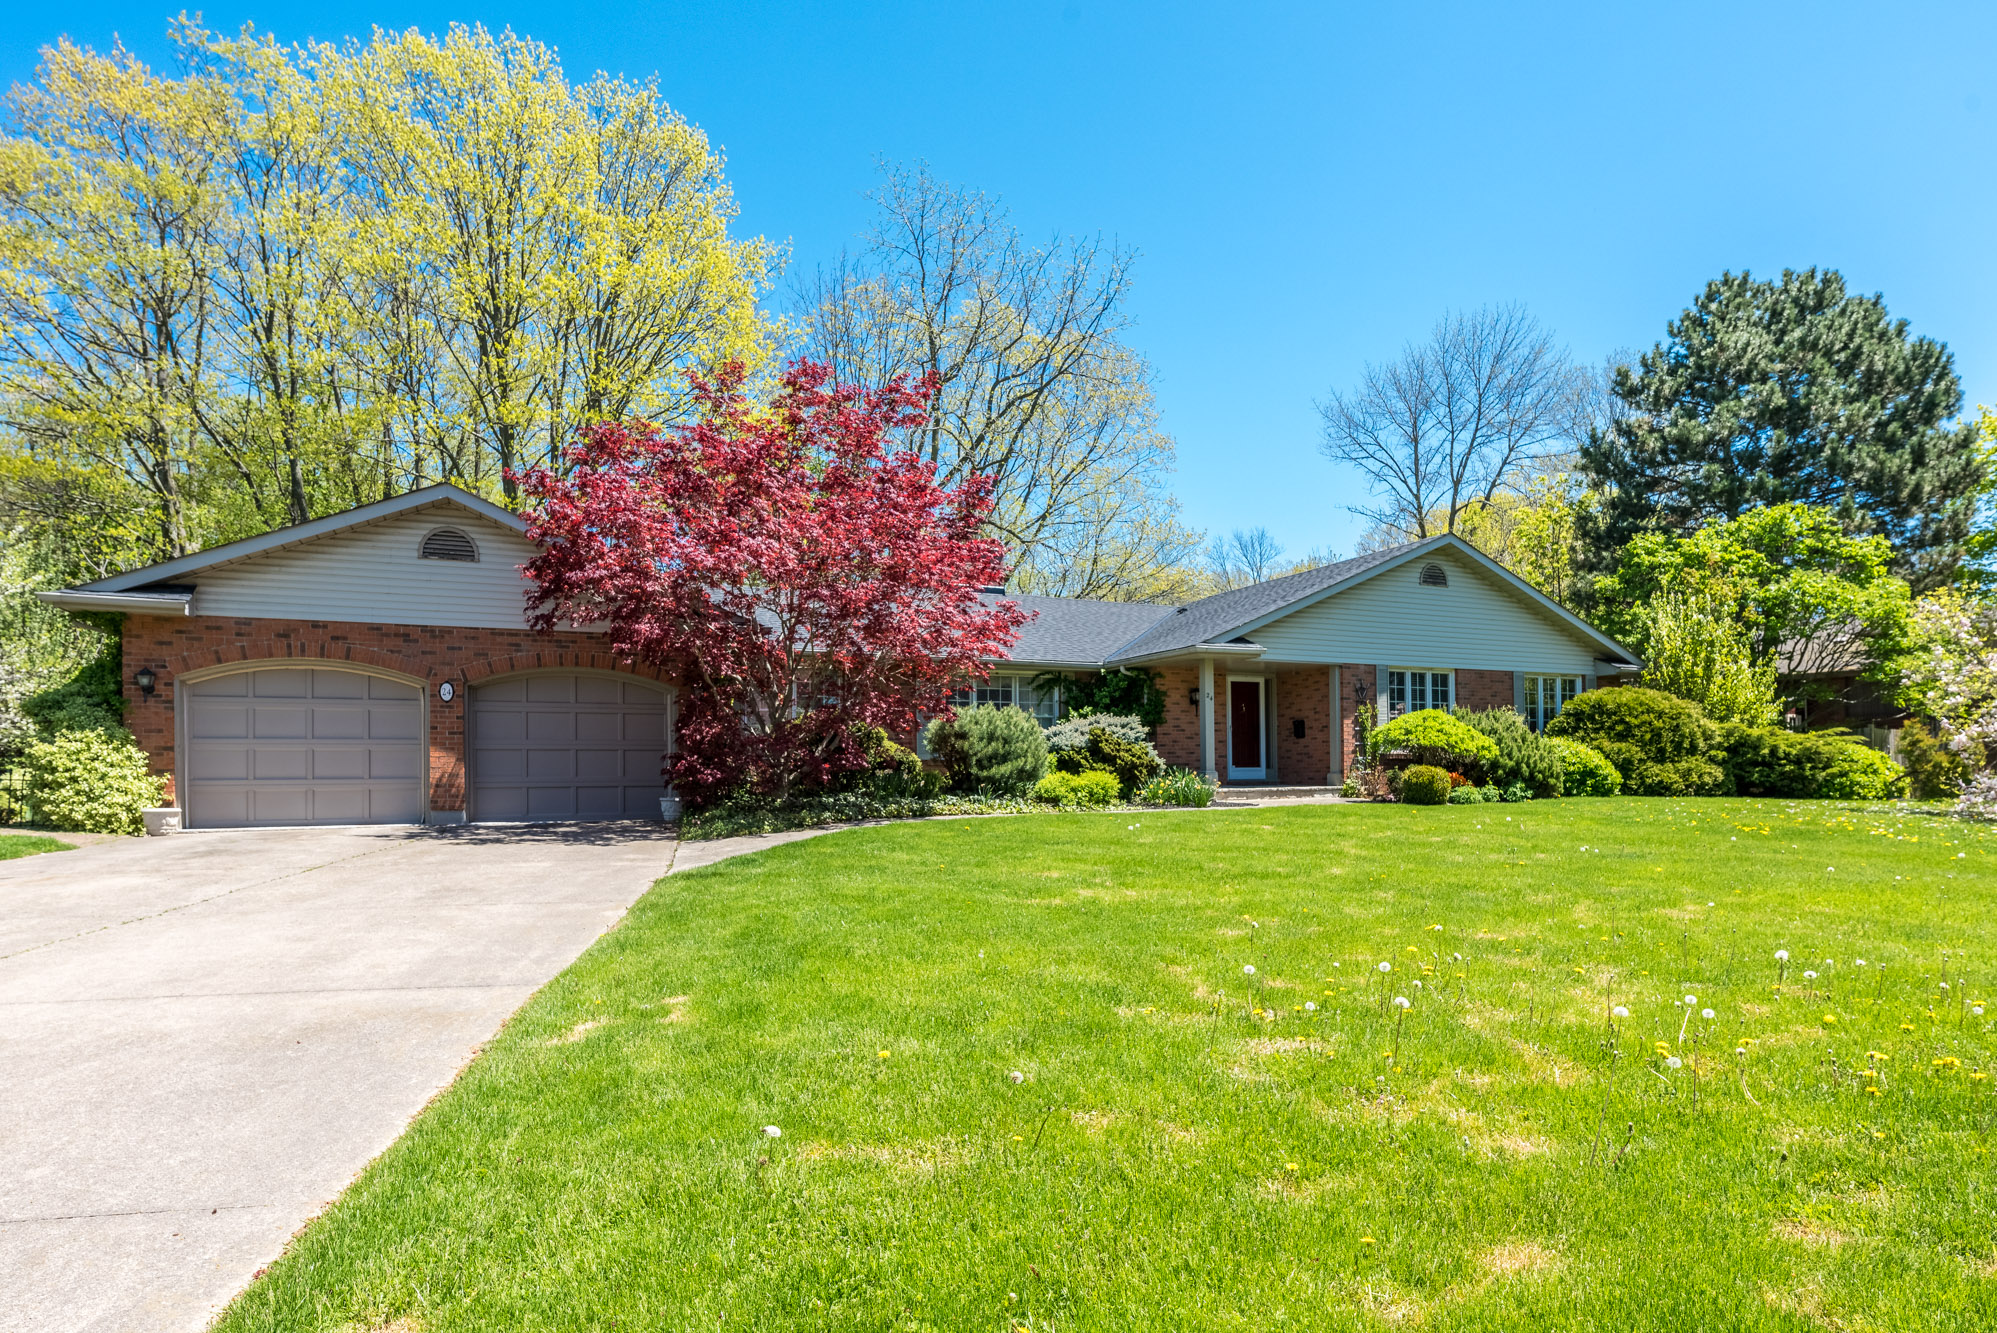 Property image for 24 Colonel Butler – Niagara-on-the-Lake